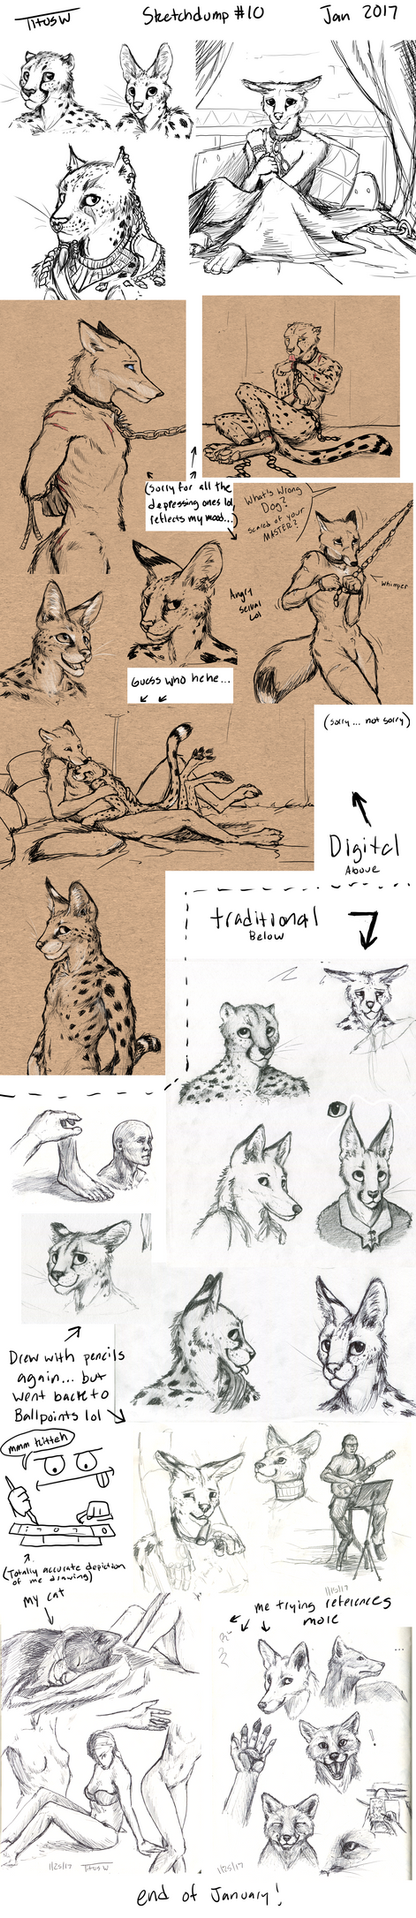 Sketchdump #10 by TitusW